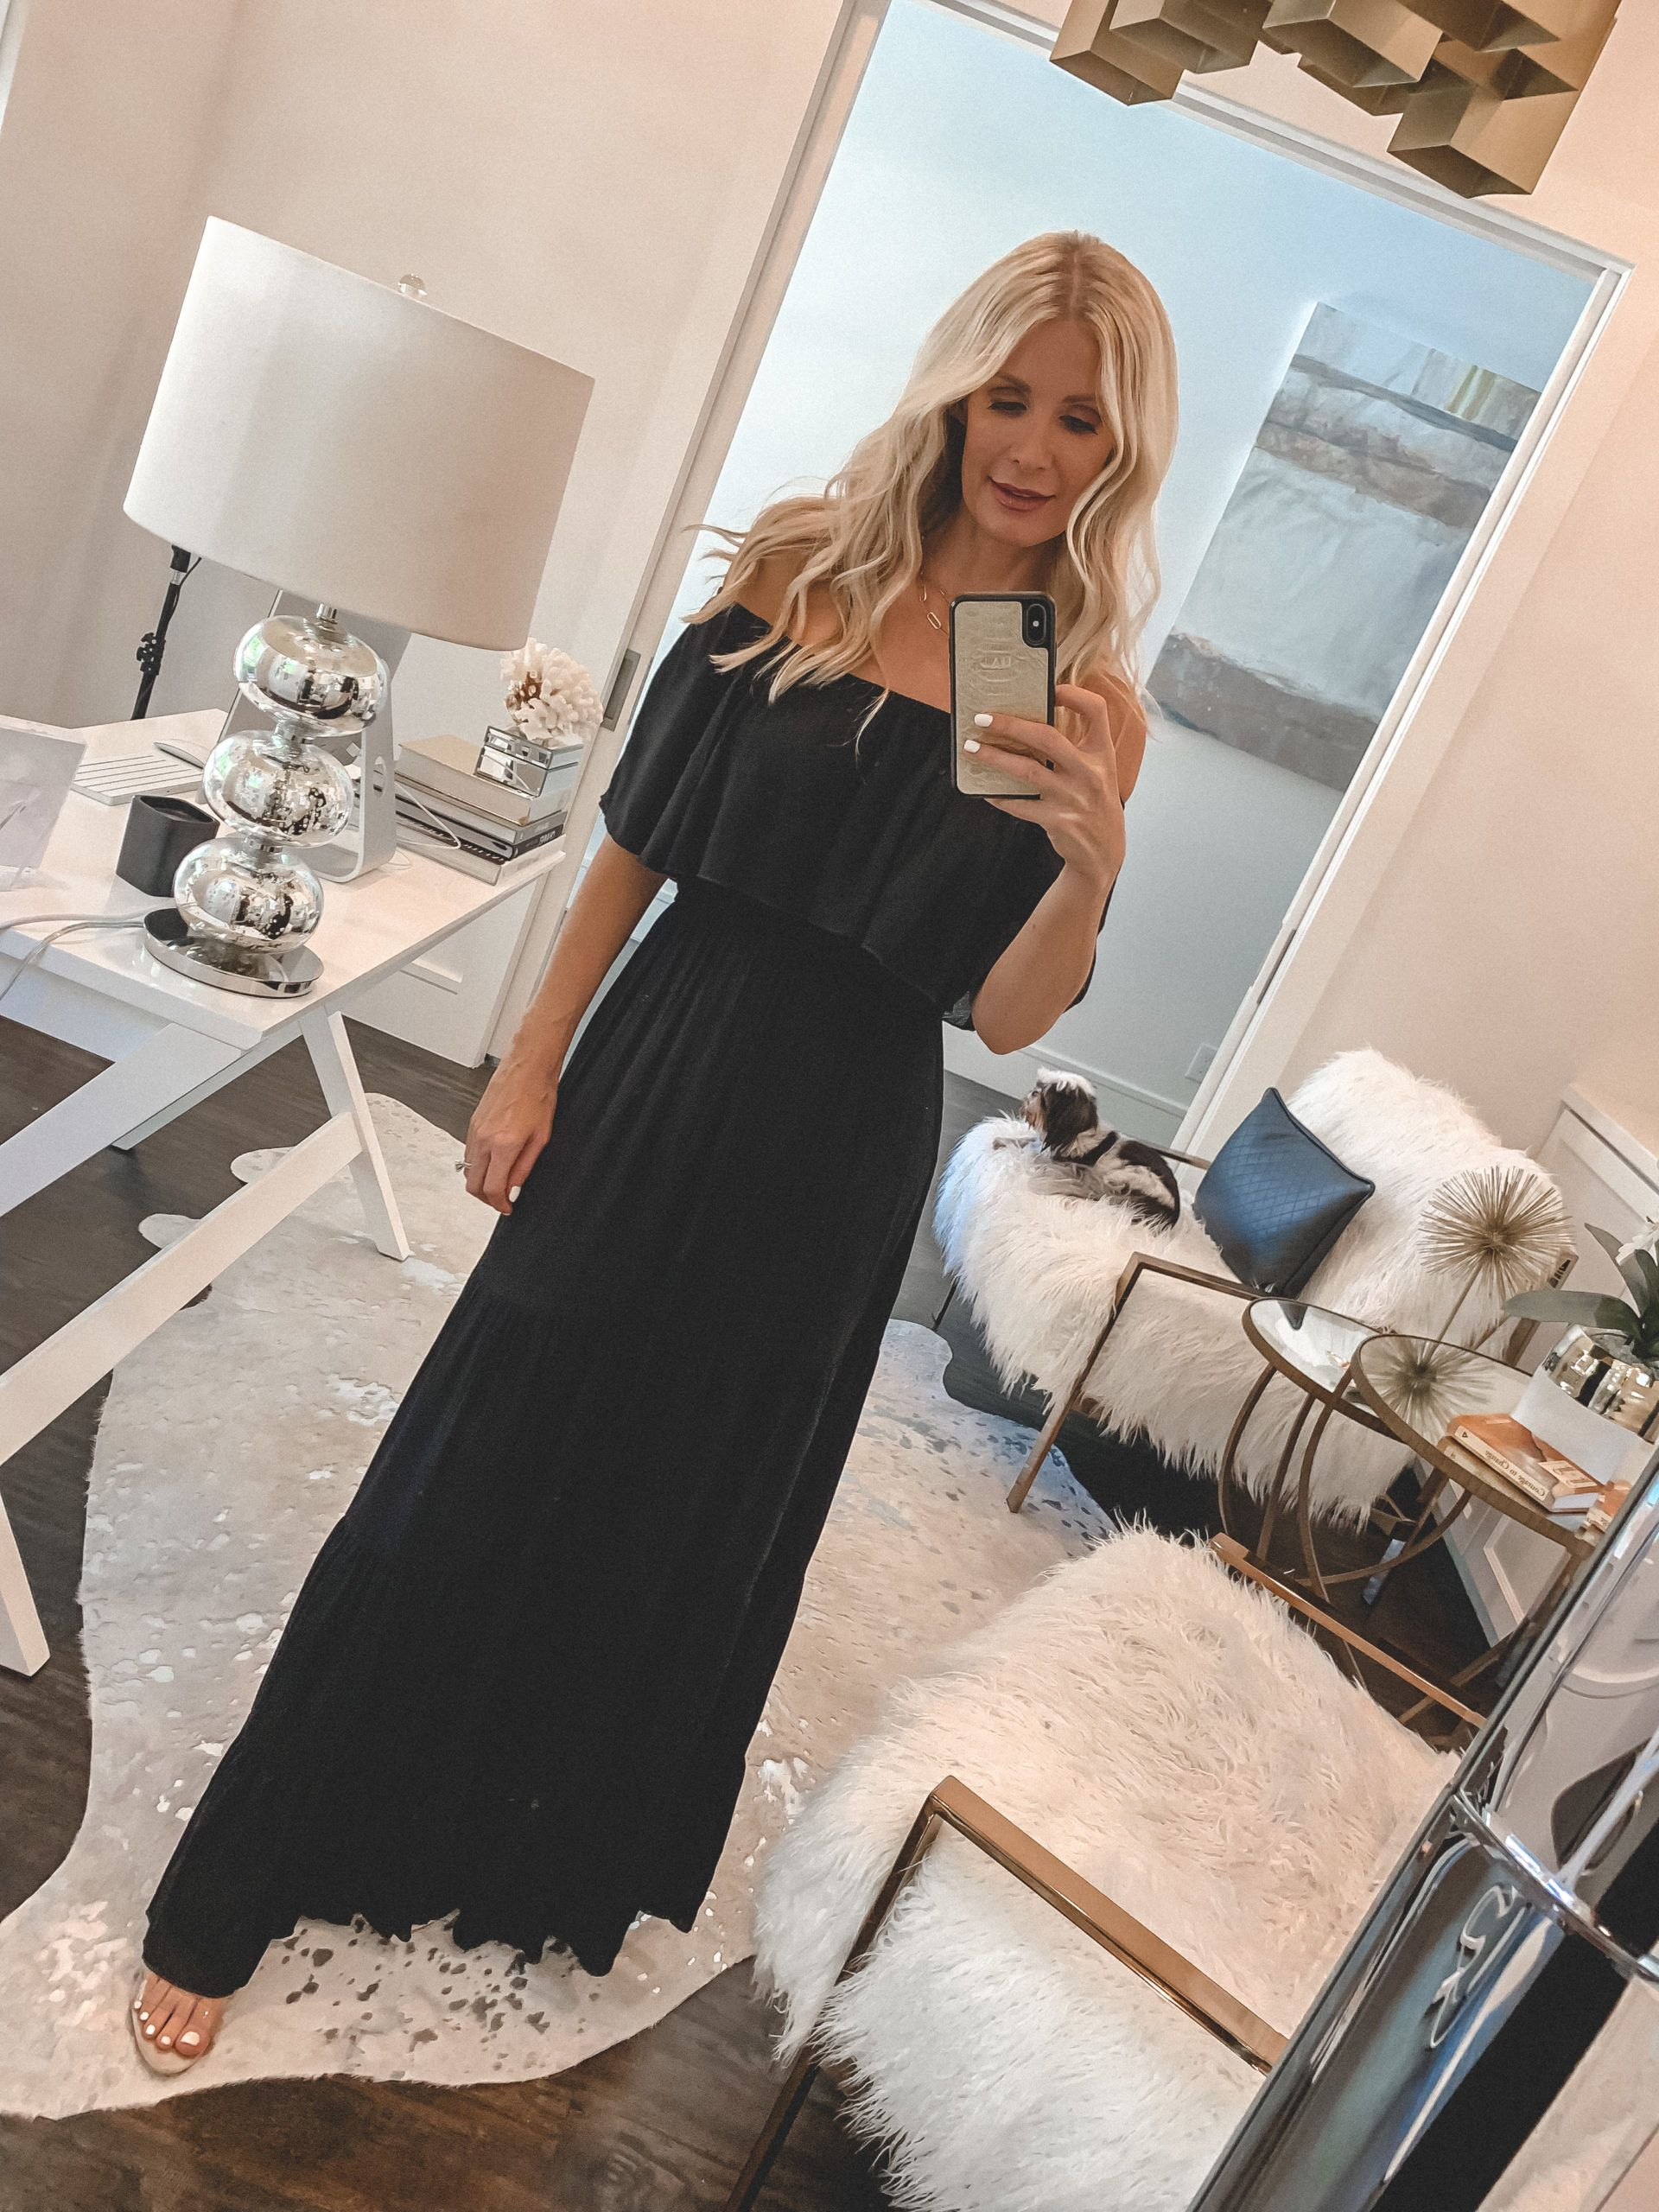 The Best Summer Dresses Chic Dresses For Summer Best Summer Dresses Chic Summer Dresses Chic Dress [ 2560 x 1920 Pixel ]